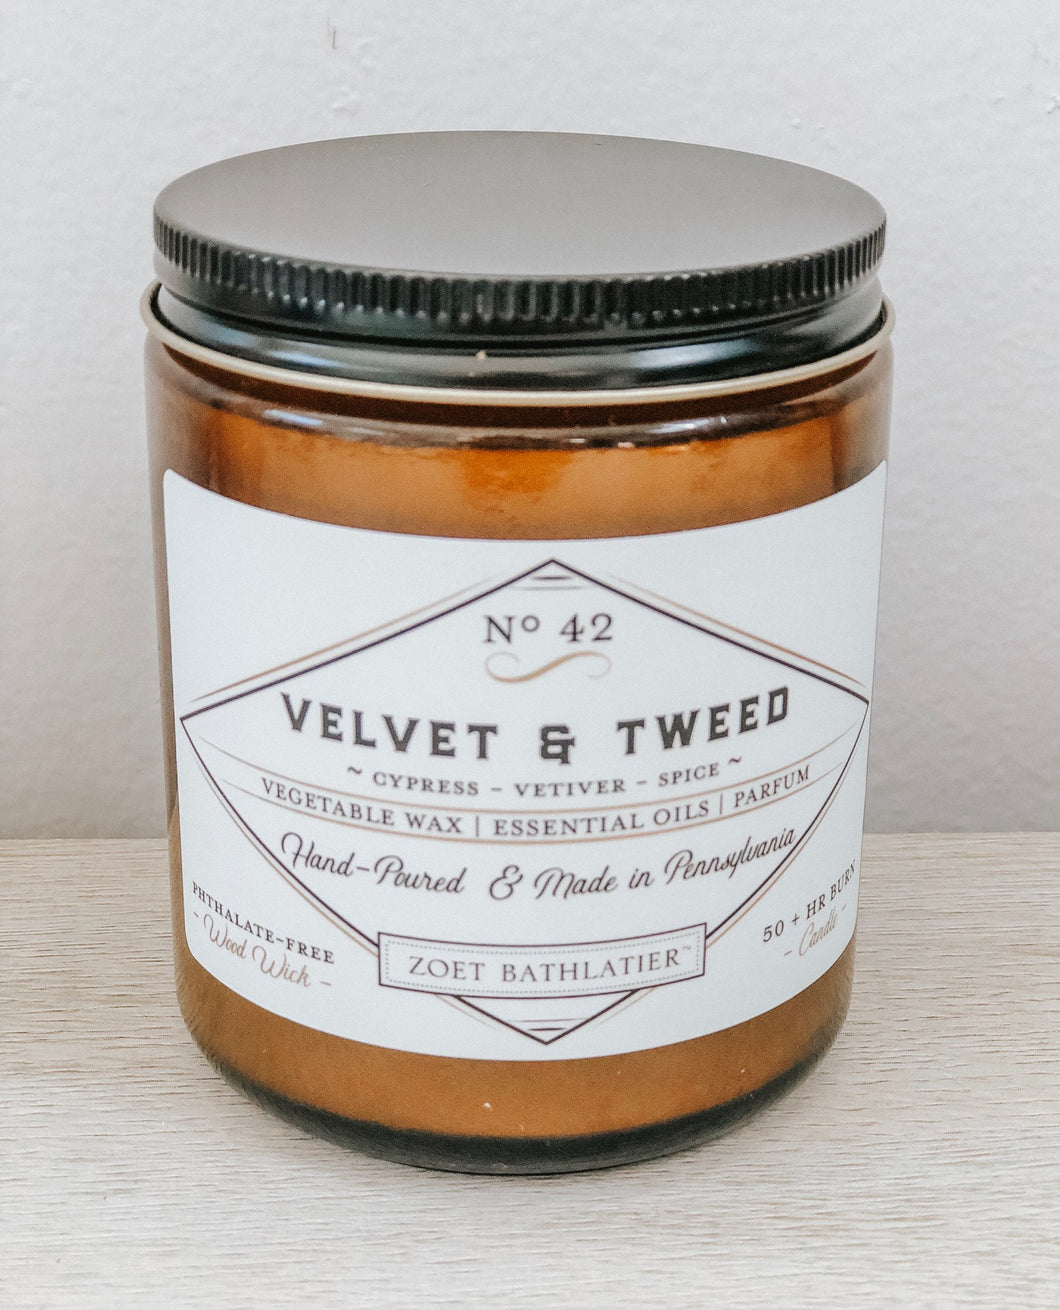 vintage candle collection - velvet & tweed